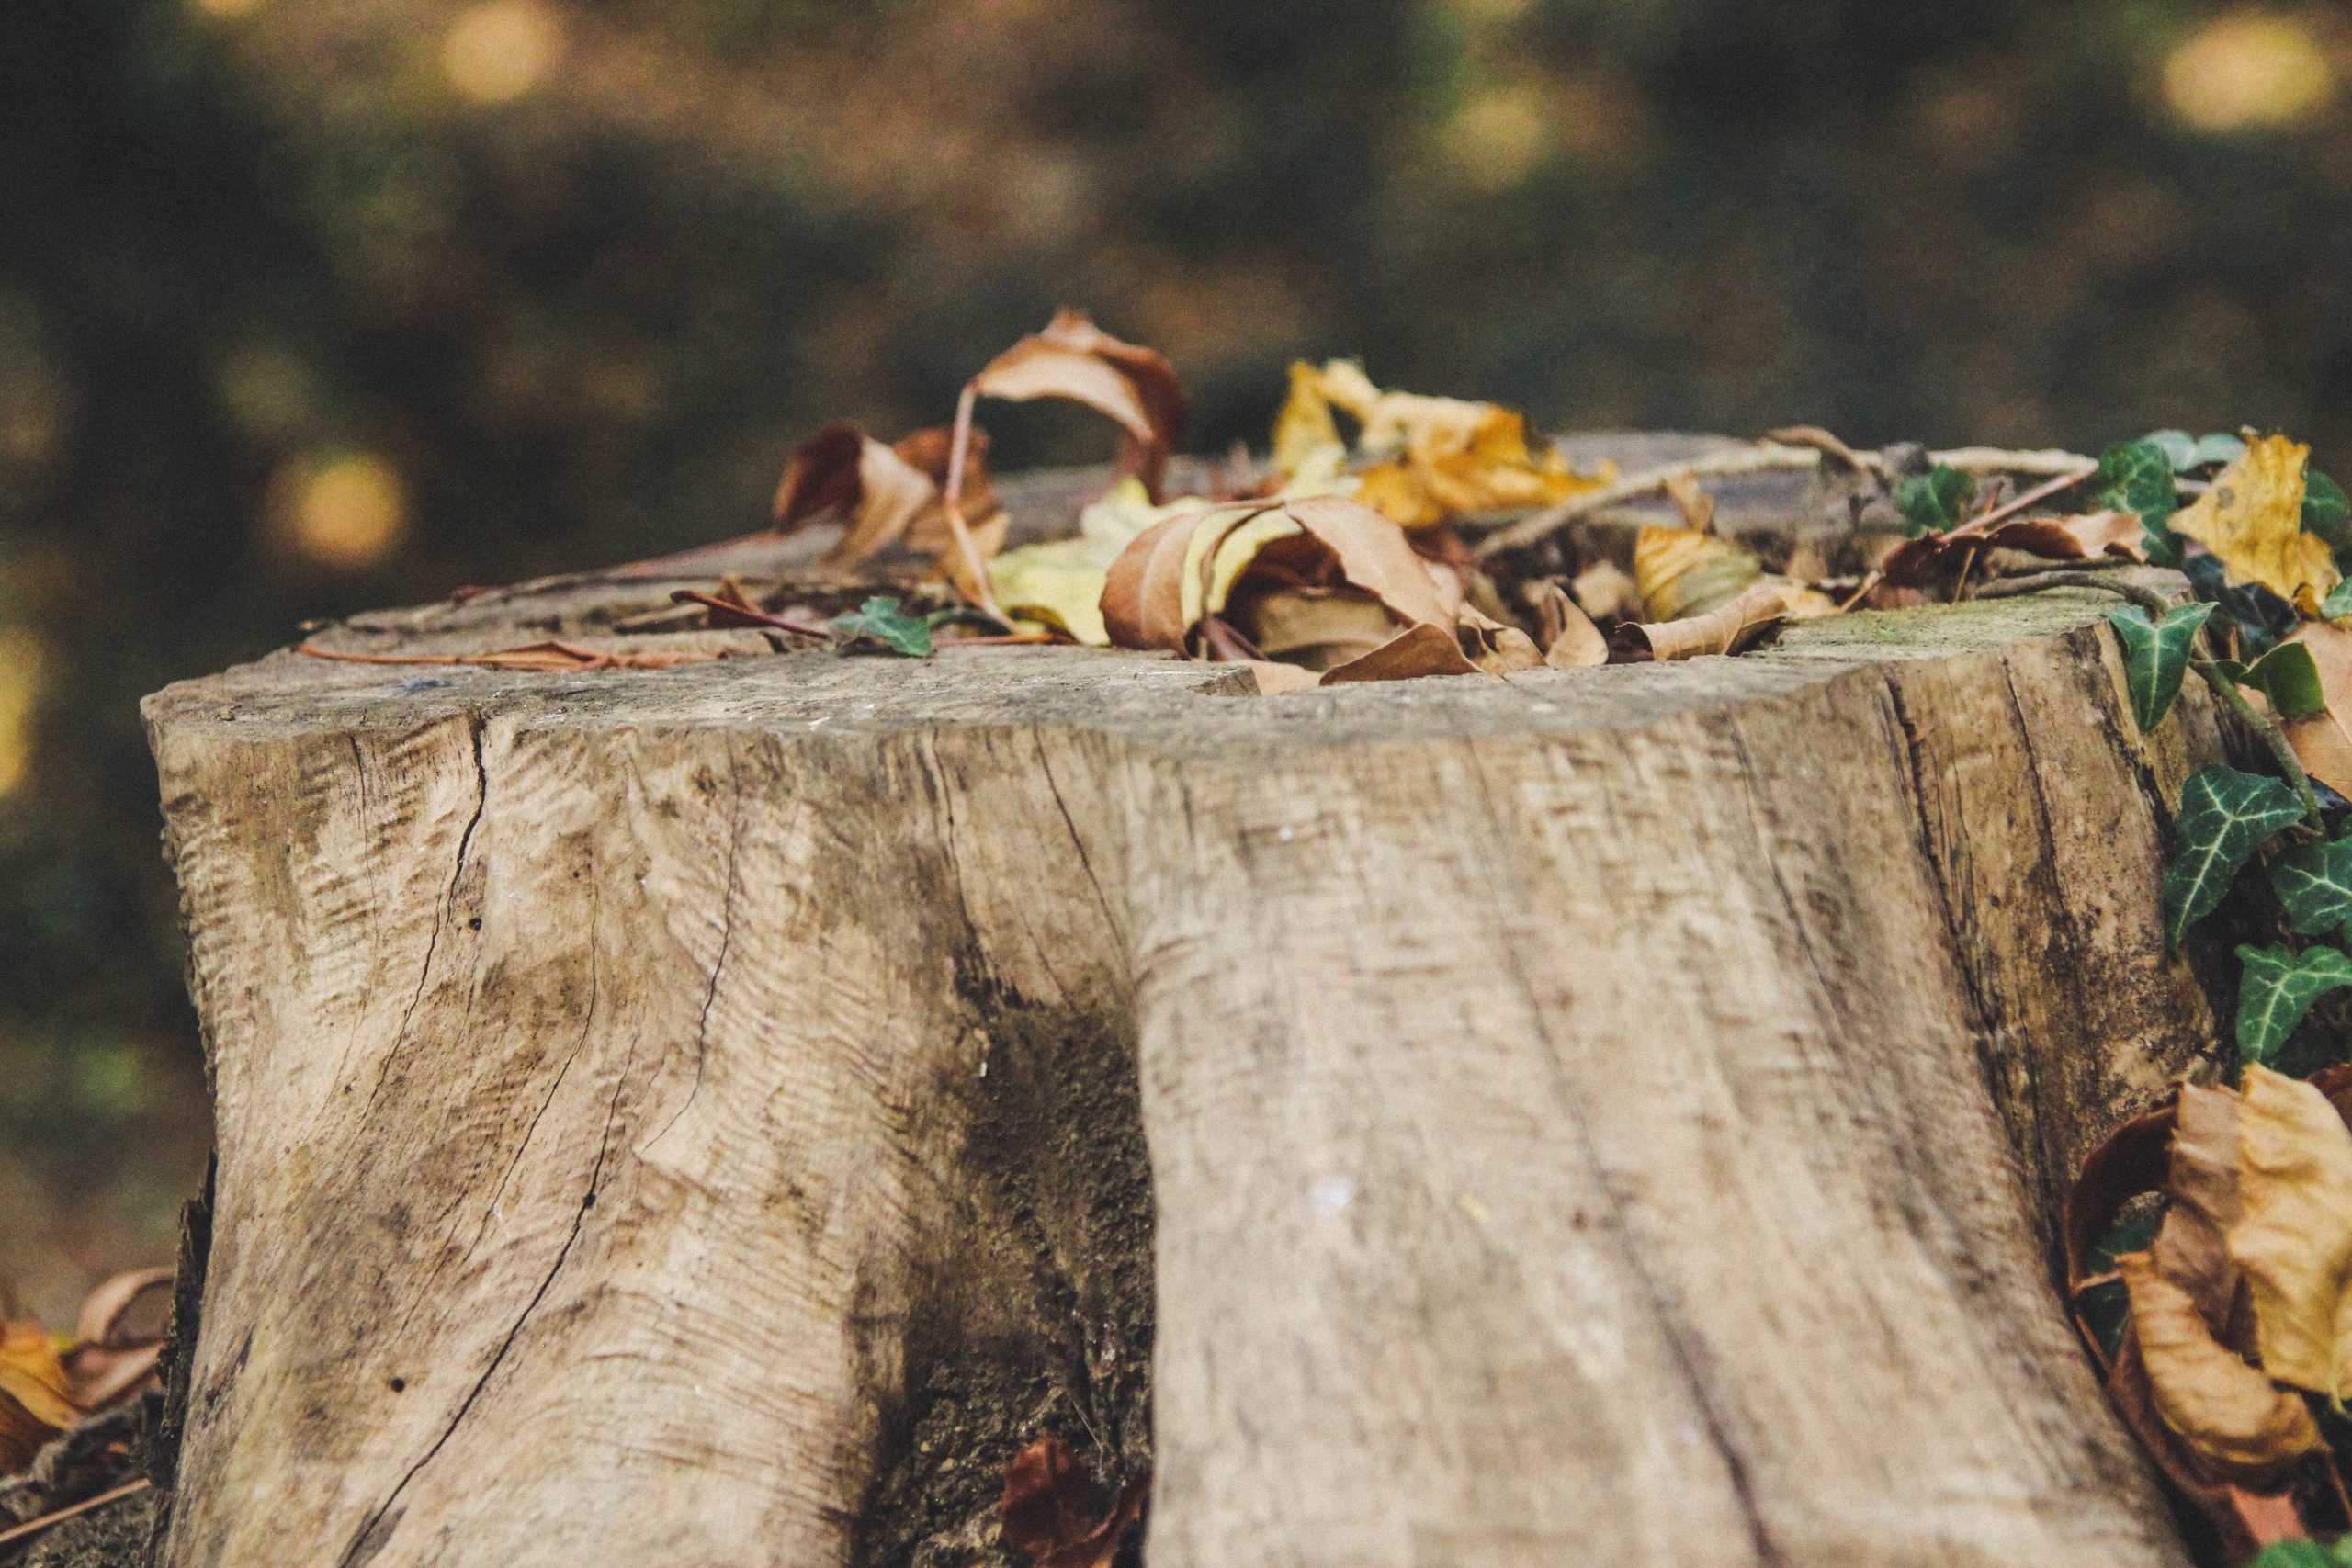 How to Remove an Old Tree Stump From Your Yard